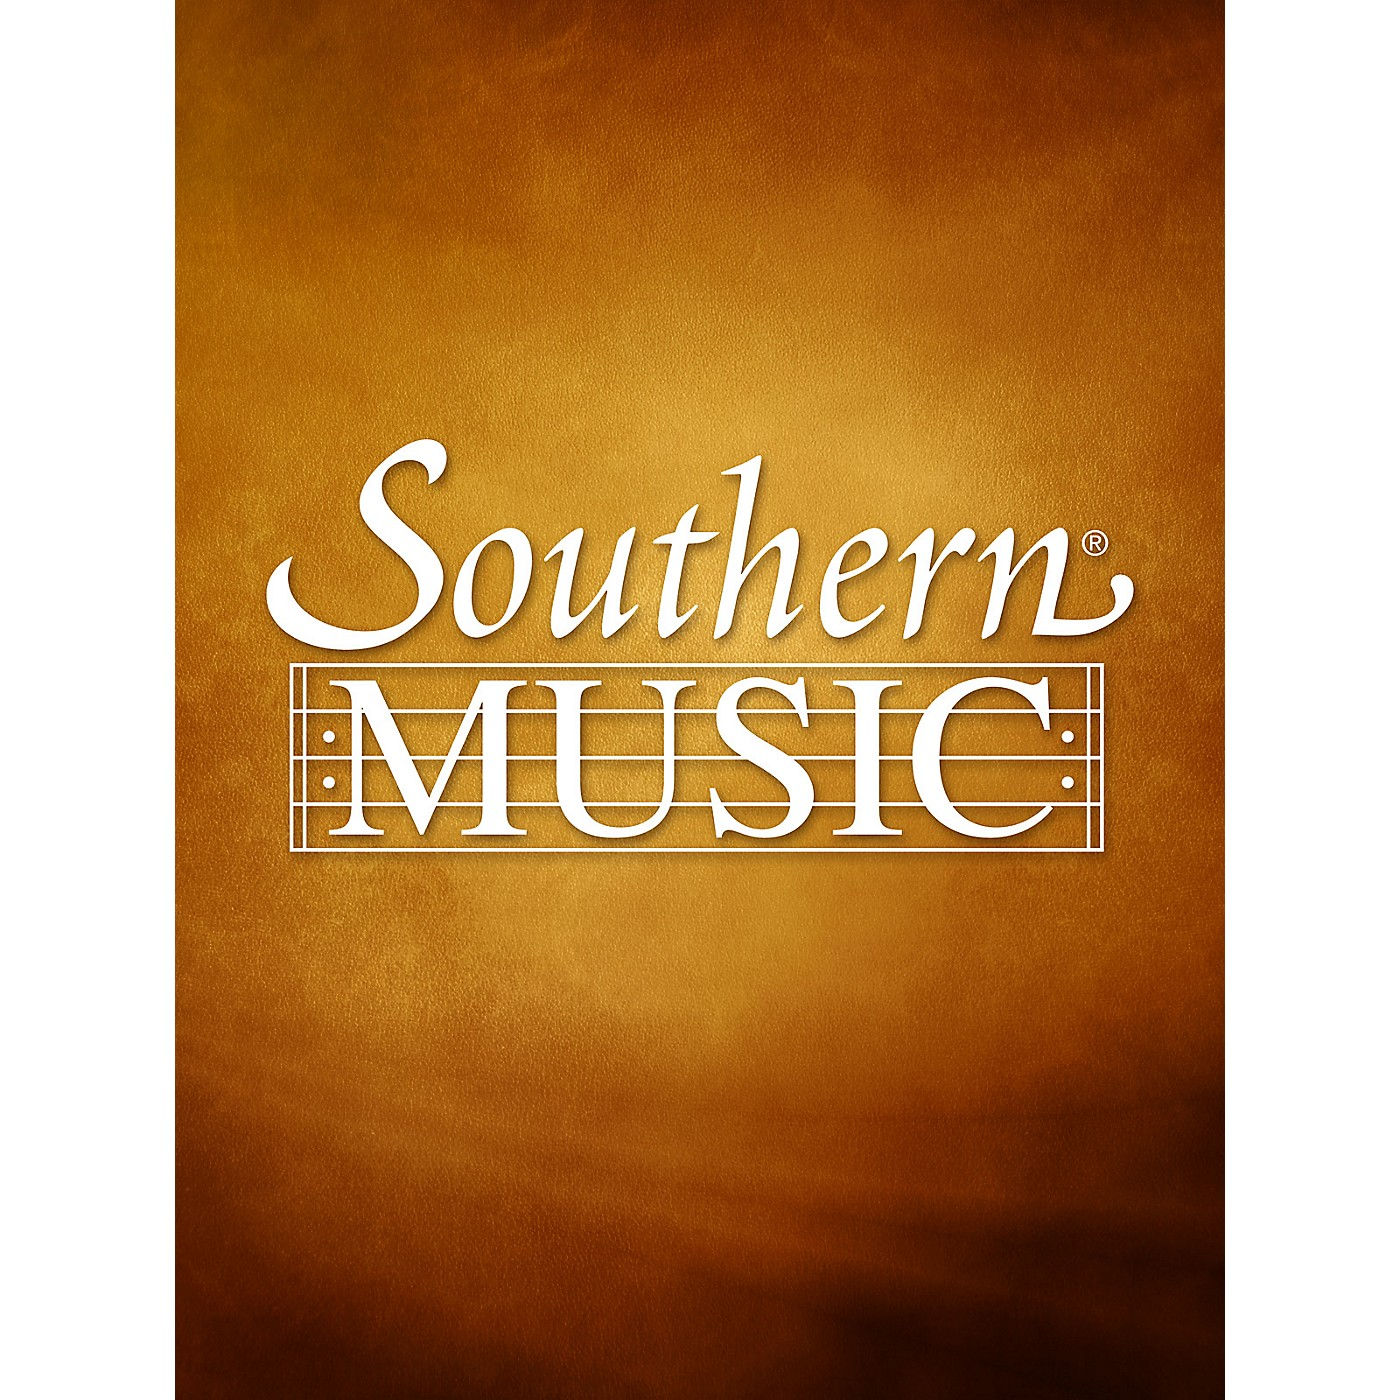 Southern Radio Flyer (Band/Concert Band Music) Concert Band Composed by John Gibson thumbnail